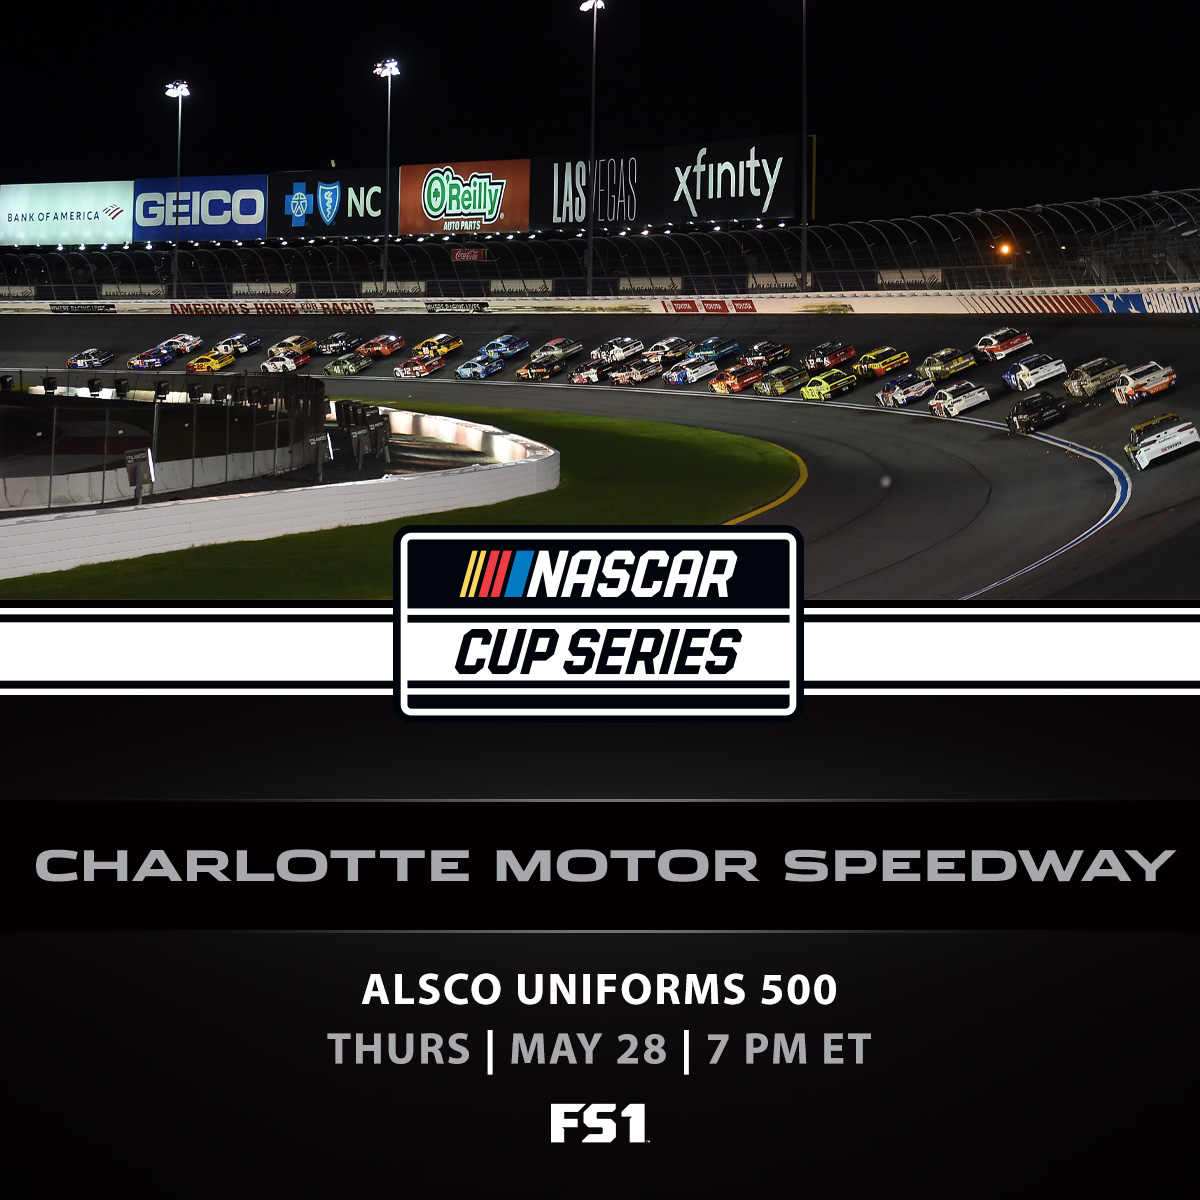 Thursday night thunder at @CLTMotorSpdwy?  SIGN. US. UP. 🔥  #NASCAR | #Alsco500 https://t.co/fep4ap97nz